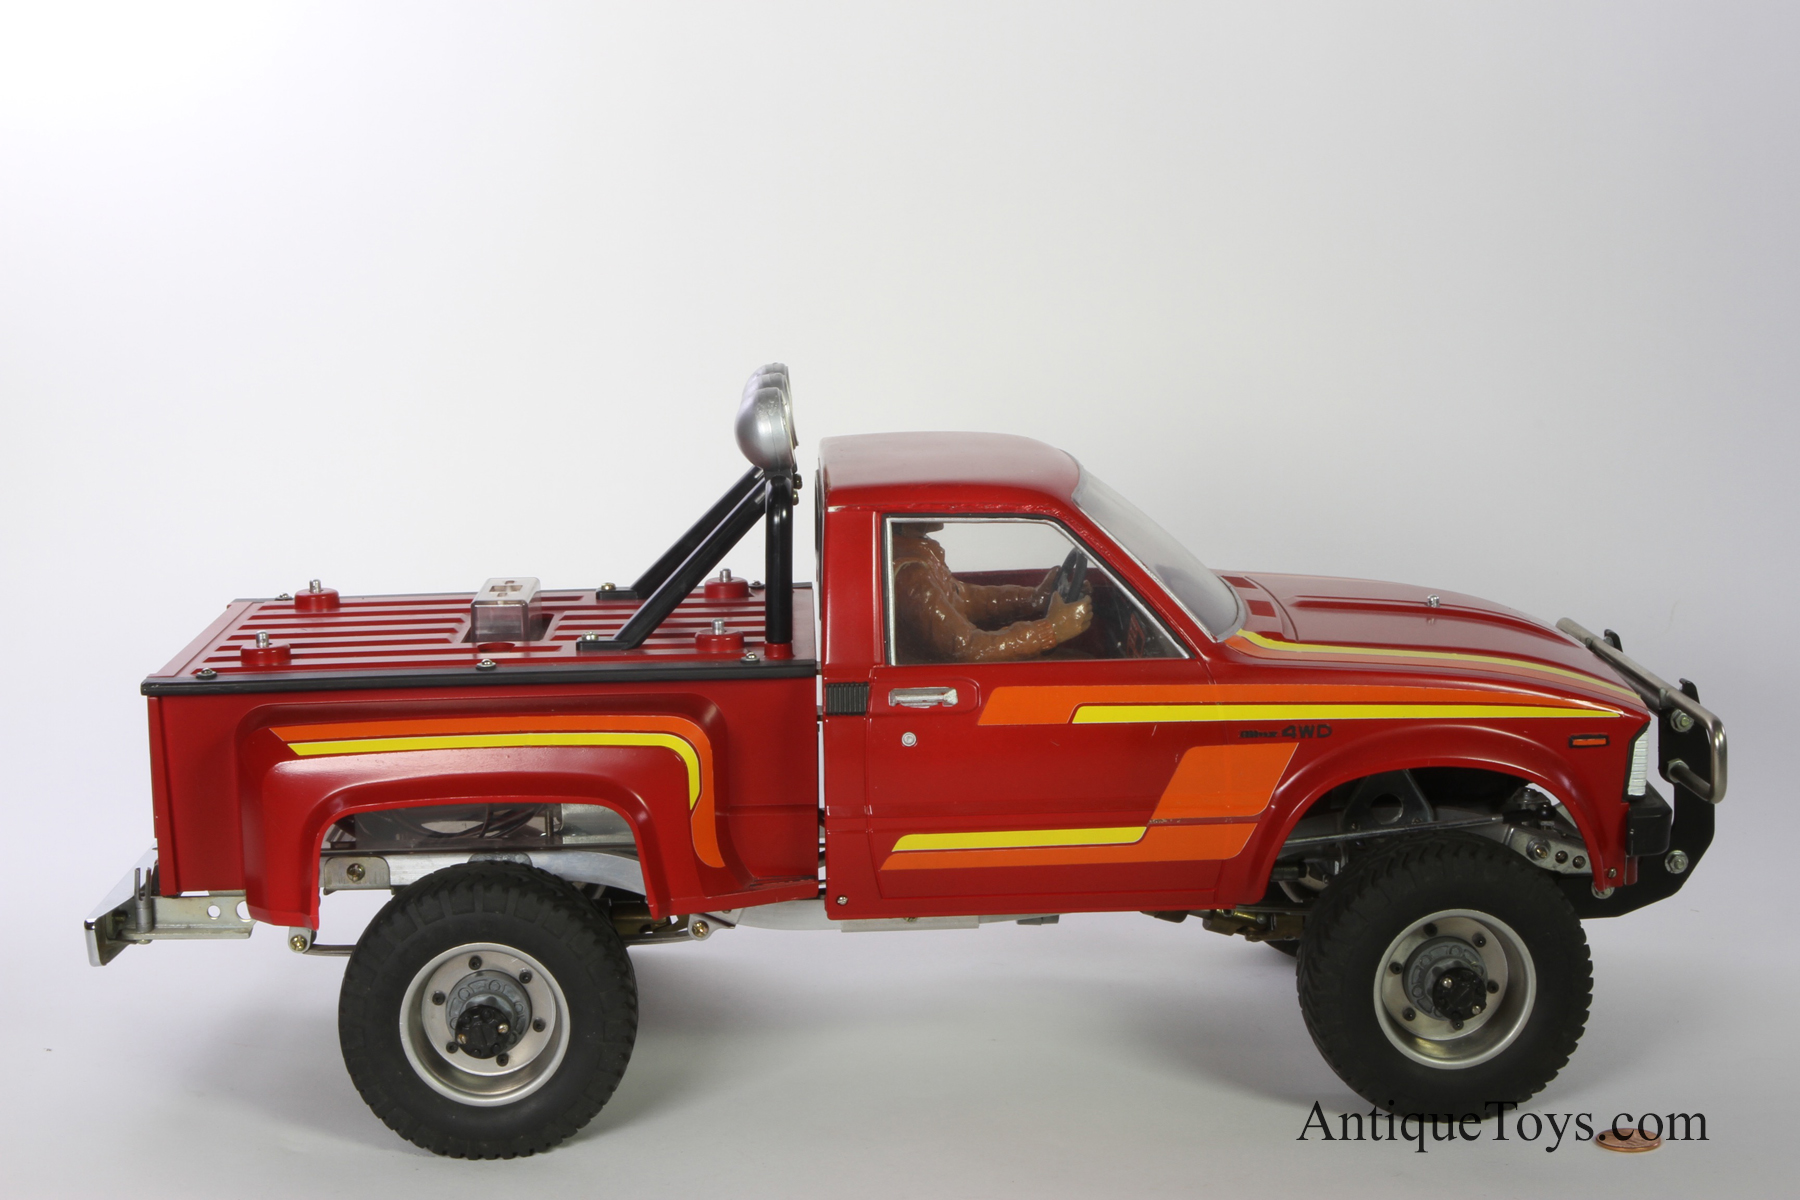 Tamiya Toyota Hilux R C 4x4 Vintage 1981 sold Antique Toys for Sale